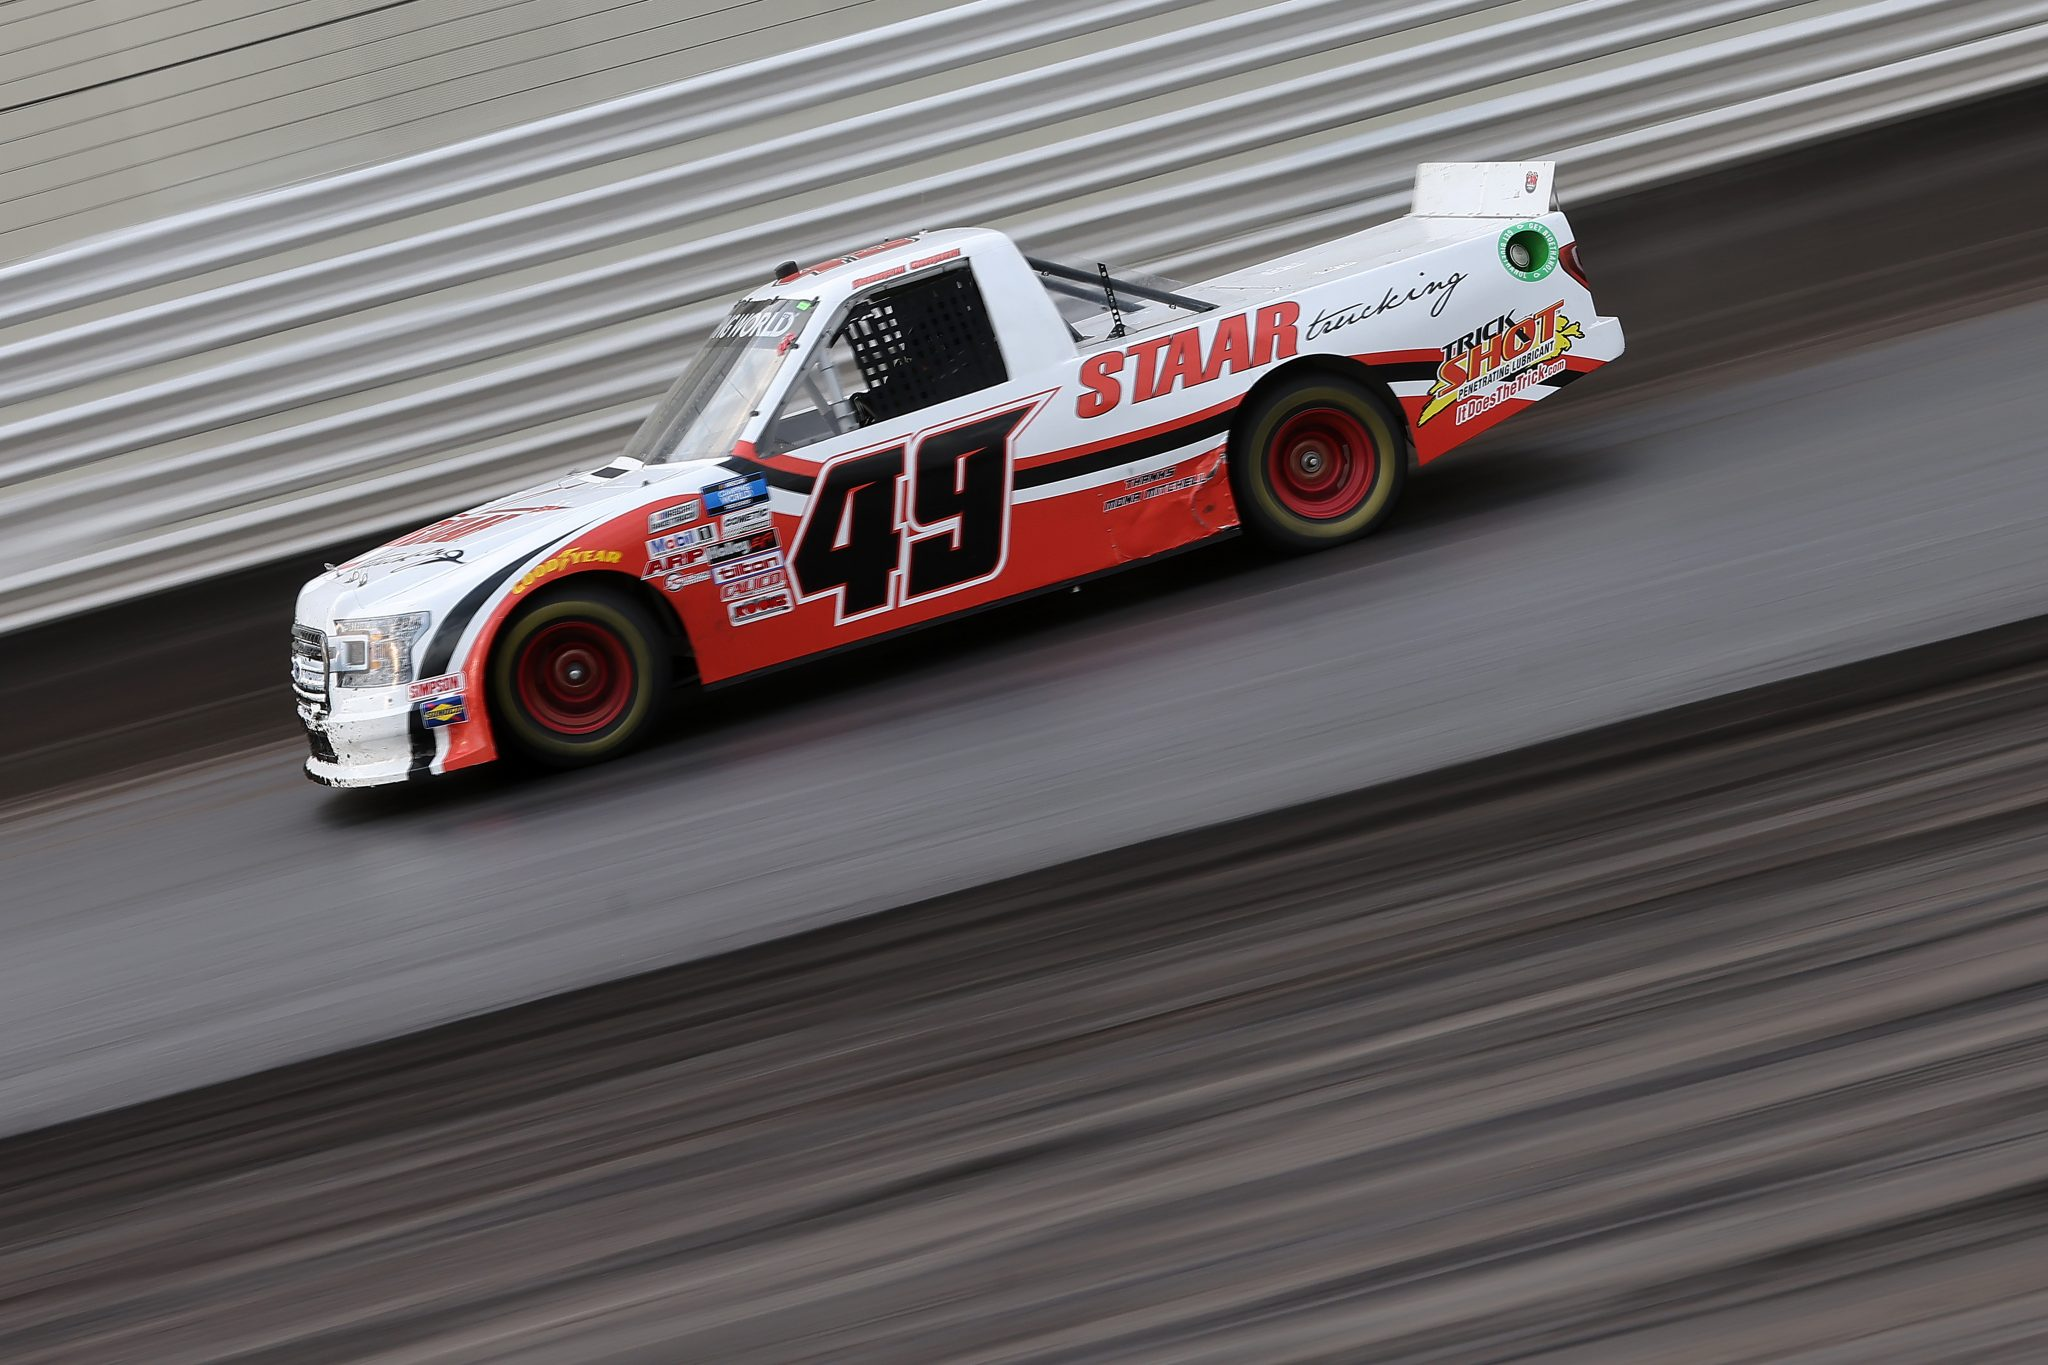 KNOXVILLE, IOWA - JULY 09: Andrew Gordon, driver of the #49 Staar Trucking Toyota, drives during qualifying for the NASCAR Camping World Truck Series Corn Belt 150 presented by Premier Chevy Dealers at Knoxville Raceway on July 09, 2021 in Knoxville, Iowa. (Photo by James Gilbert/Getty Images) | Getty Images